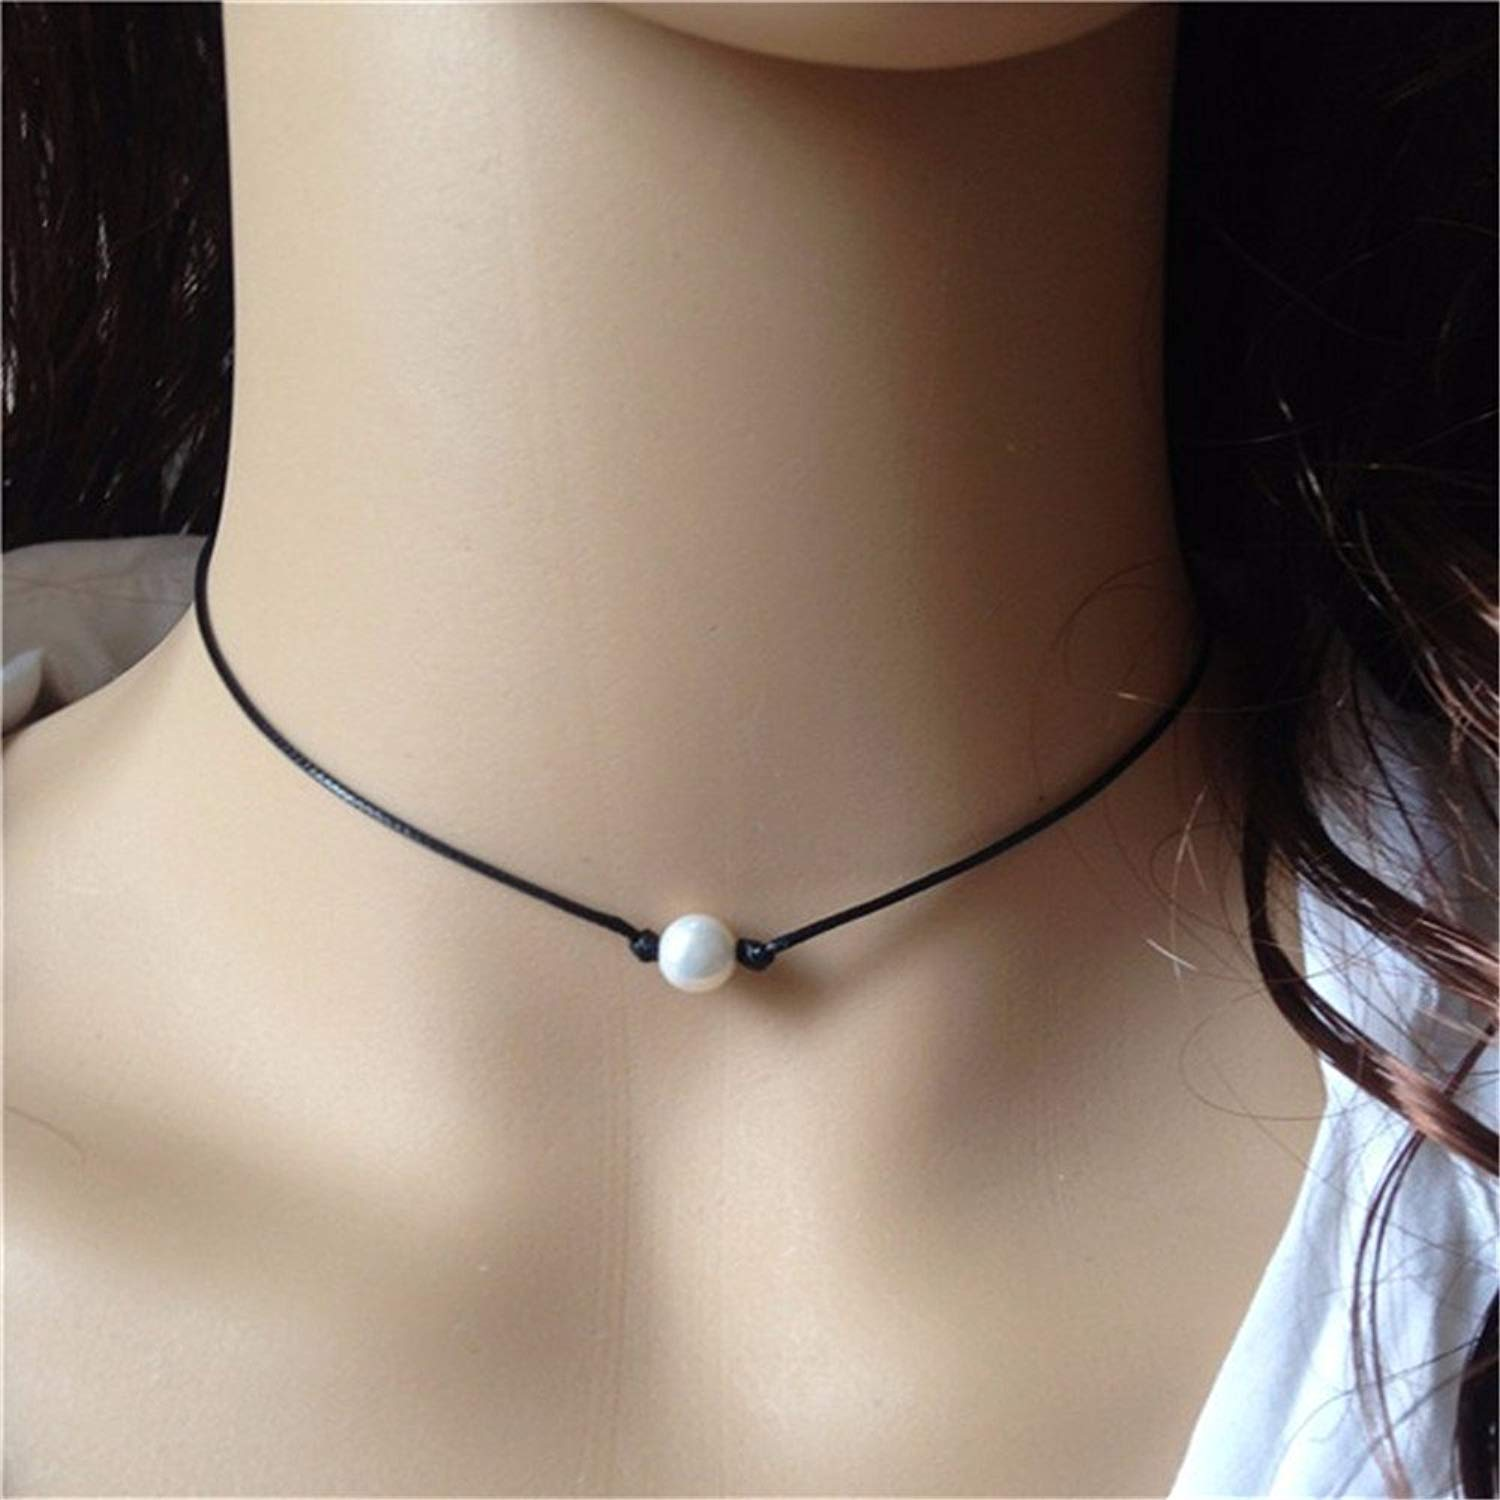 White Pearl Necklace Choker with 8mm Cultured Pearl on Black Leather Single Floating Bridal Pearl Jewelry